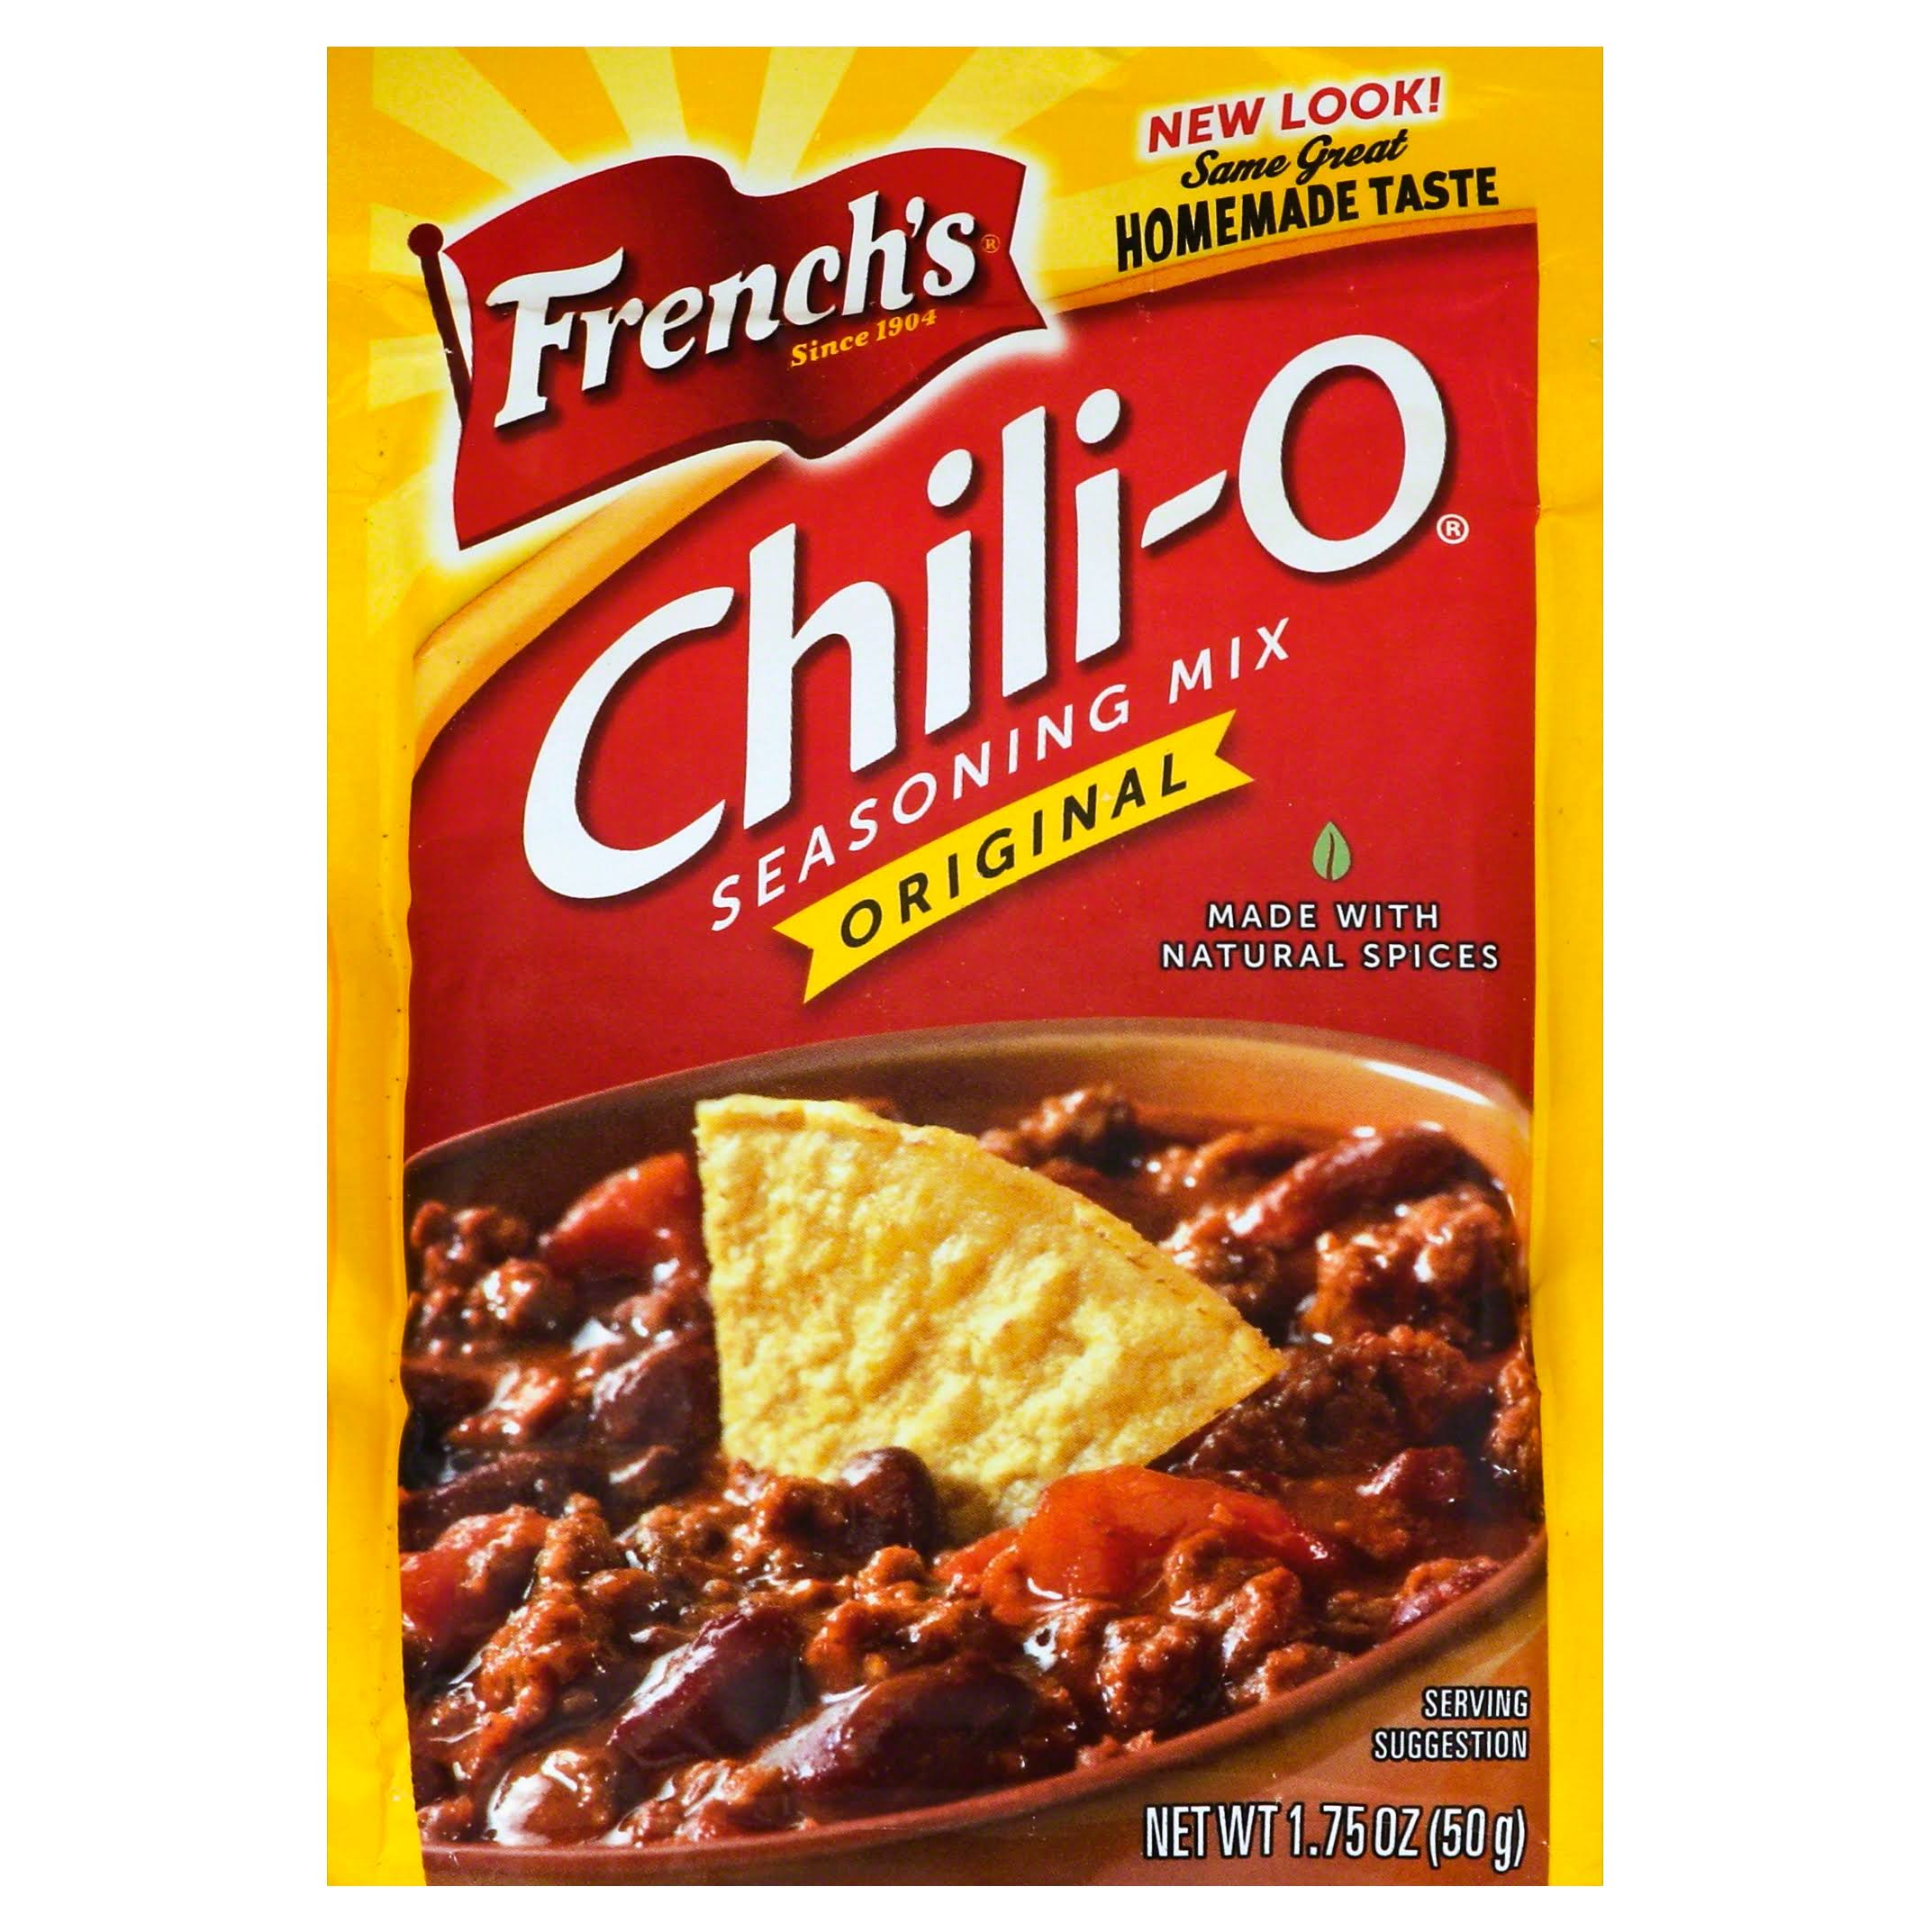 French's Original Chili-O Seasoning Mix - 50g